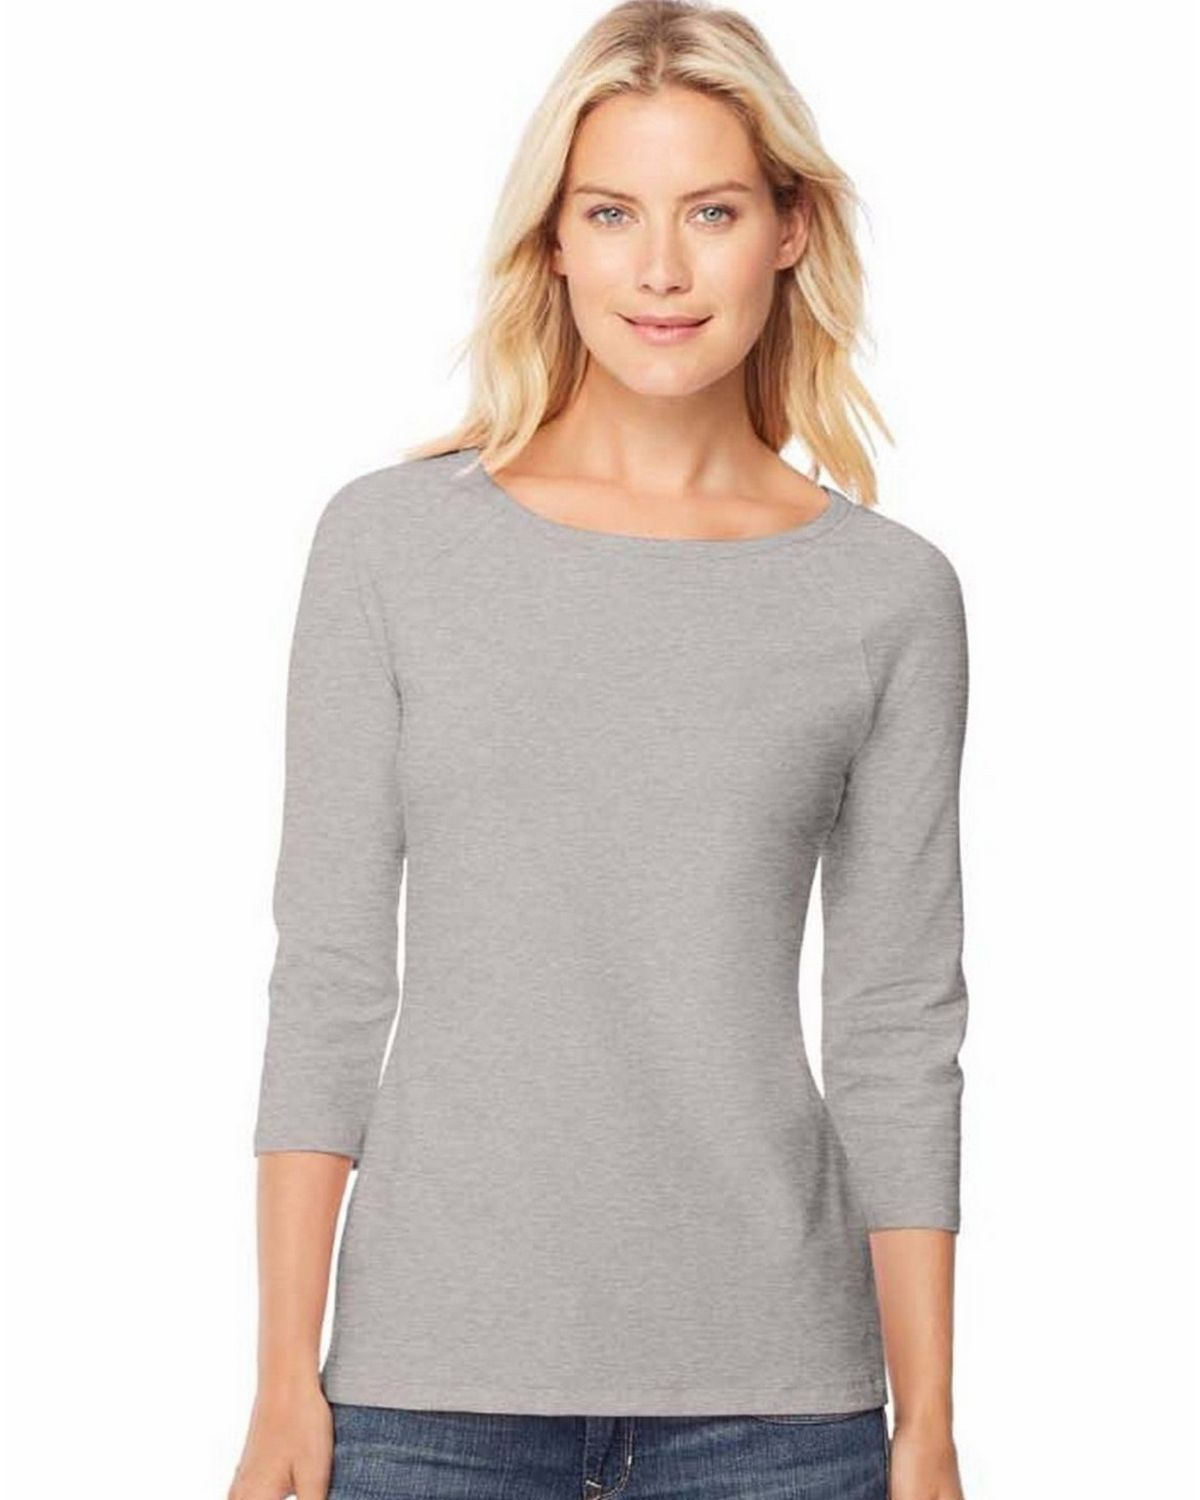 Hanes O9343 Cotton Womens Raglan Sleeve Tee - Grey Heather - M O9343